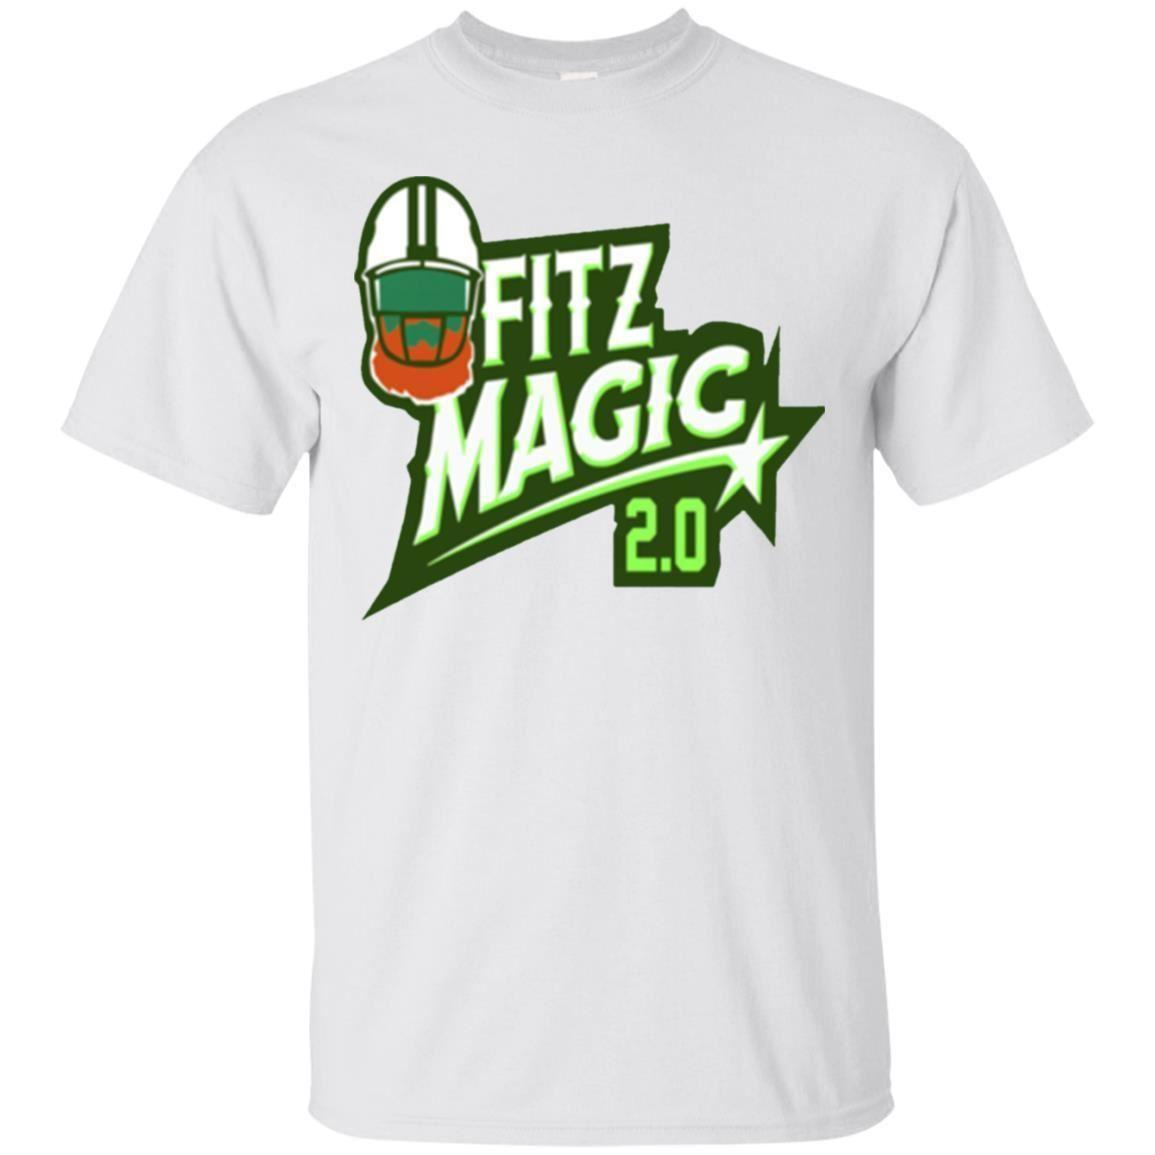 Ryan Fitzpatrick FItzMagic T Shirt Fitzmagic Buccaneers Tee Short Sleeve S  5XL Cool Team Shirts Crazy Shirt Designs From Happytshirt53 e4c718a56